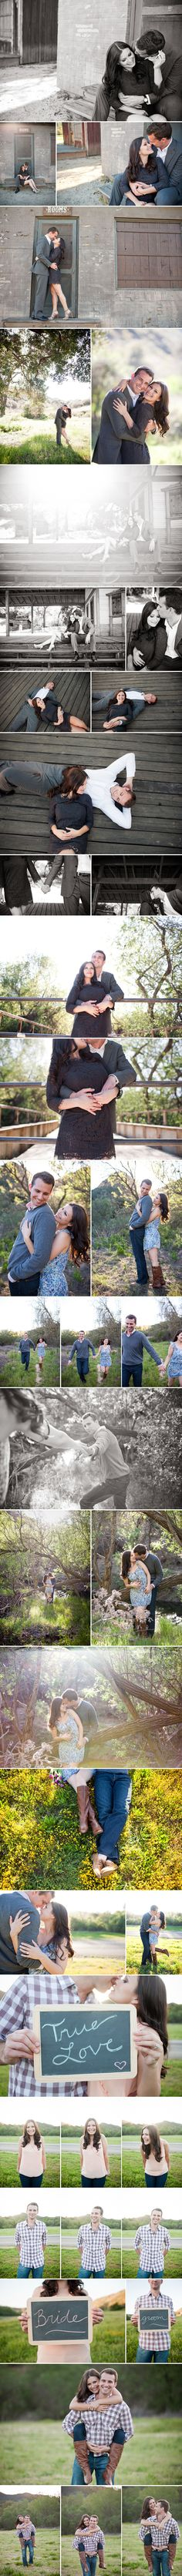 Engagement session.